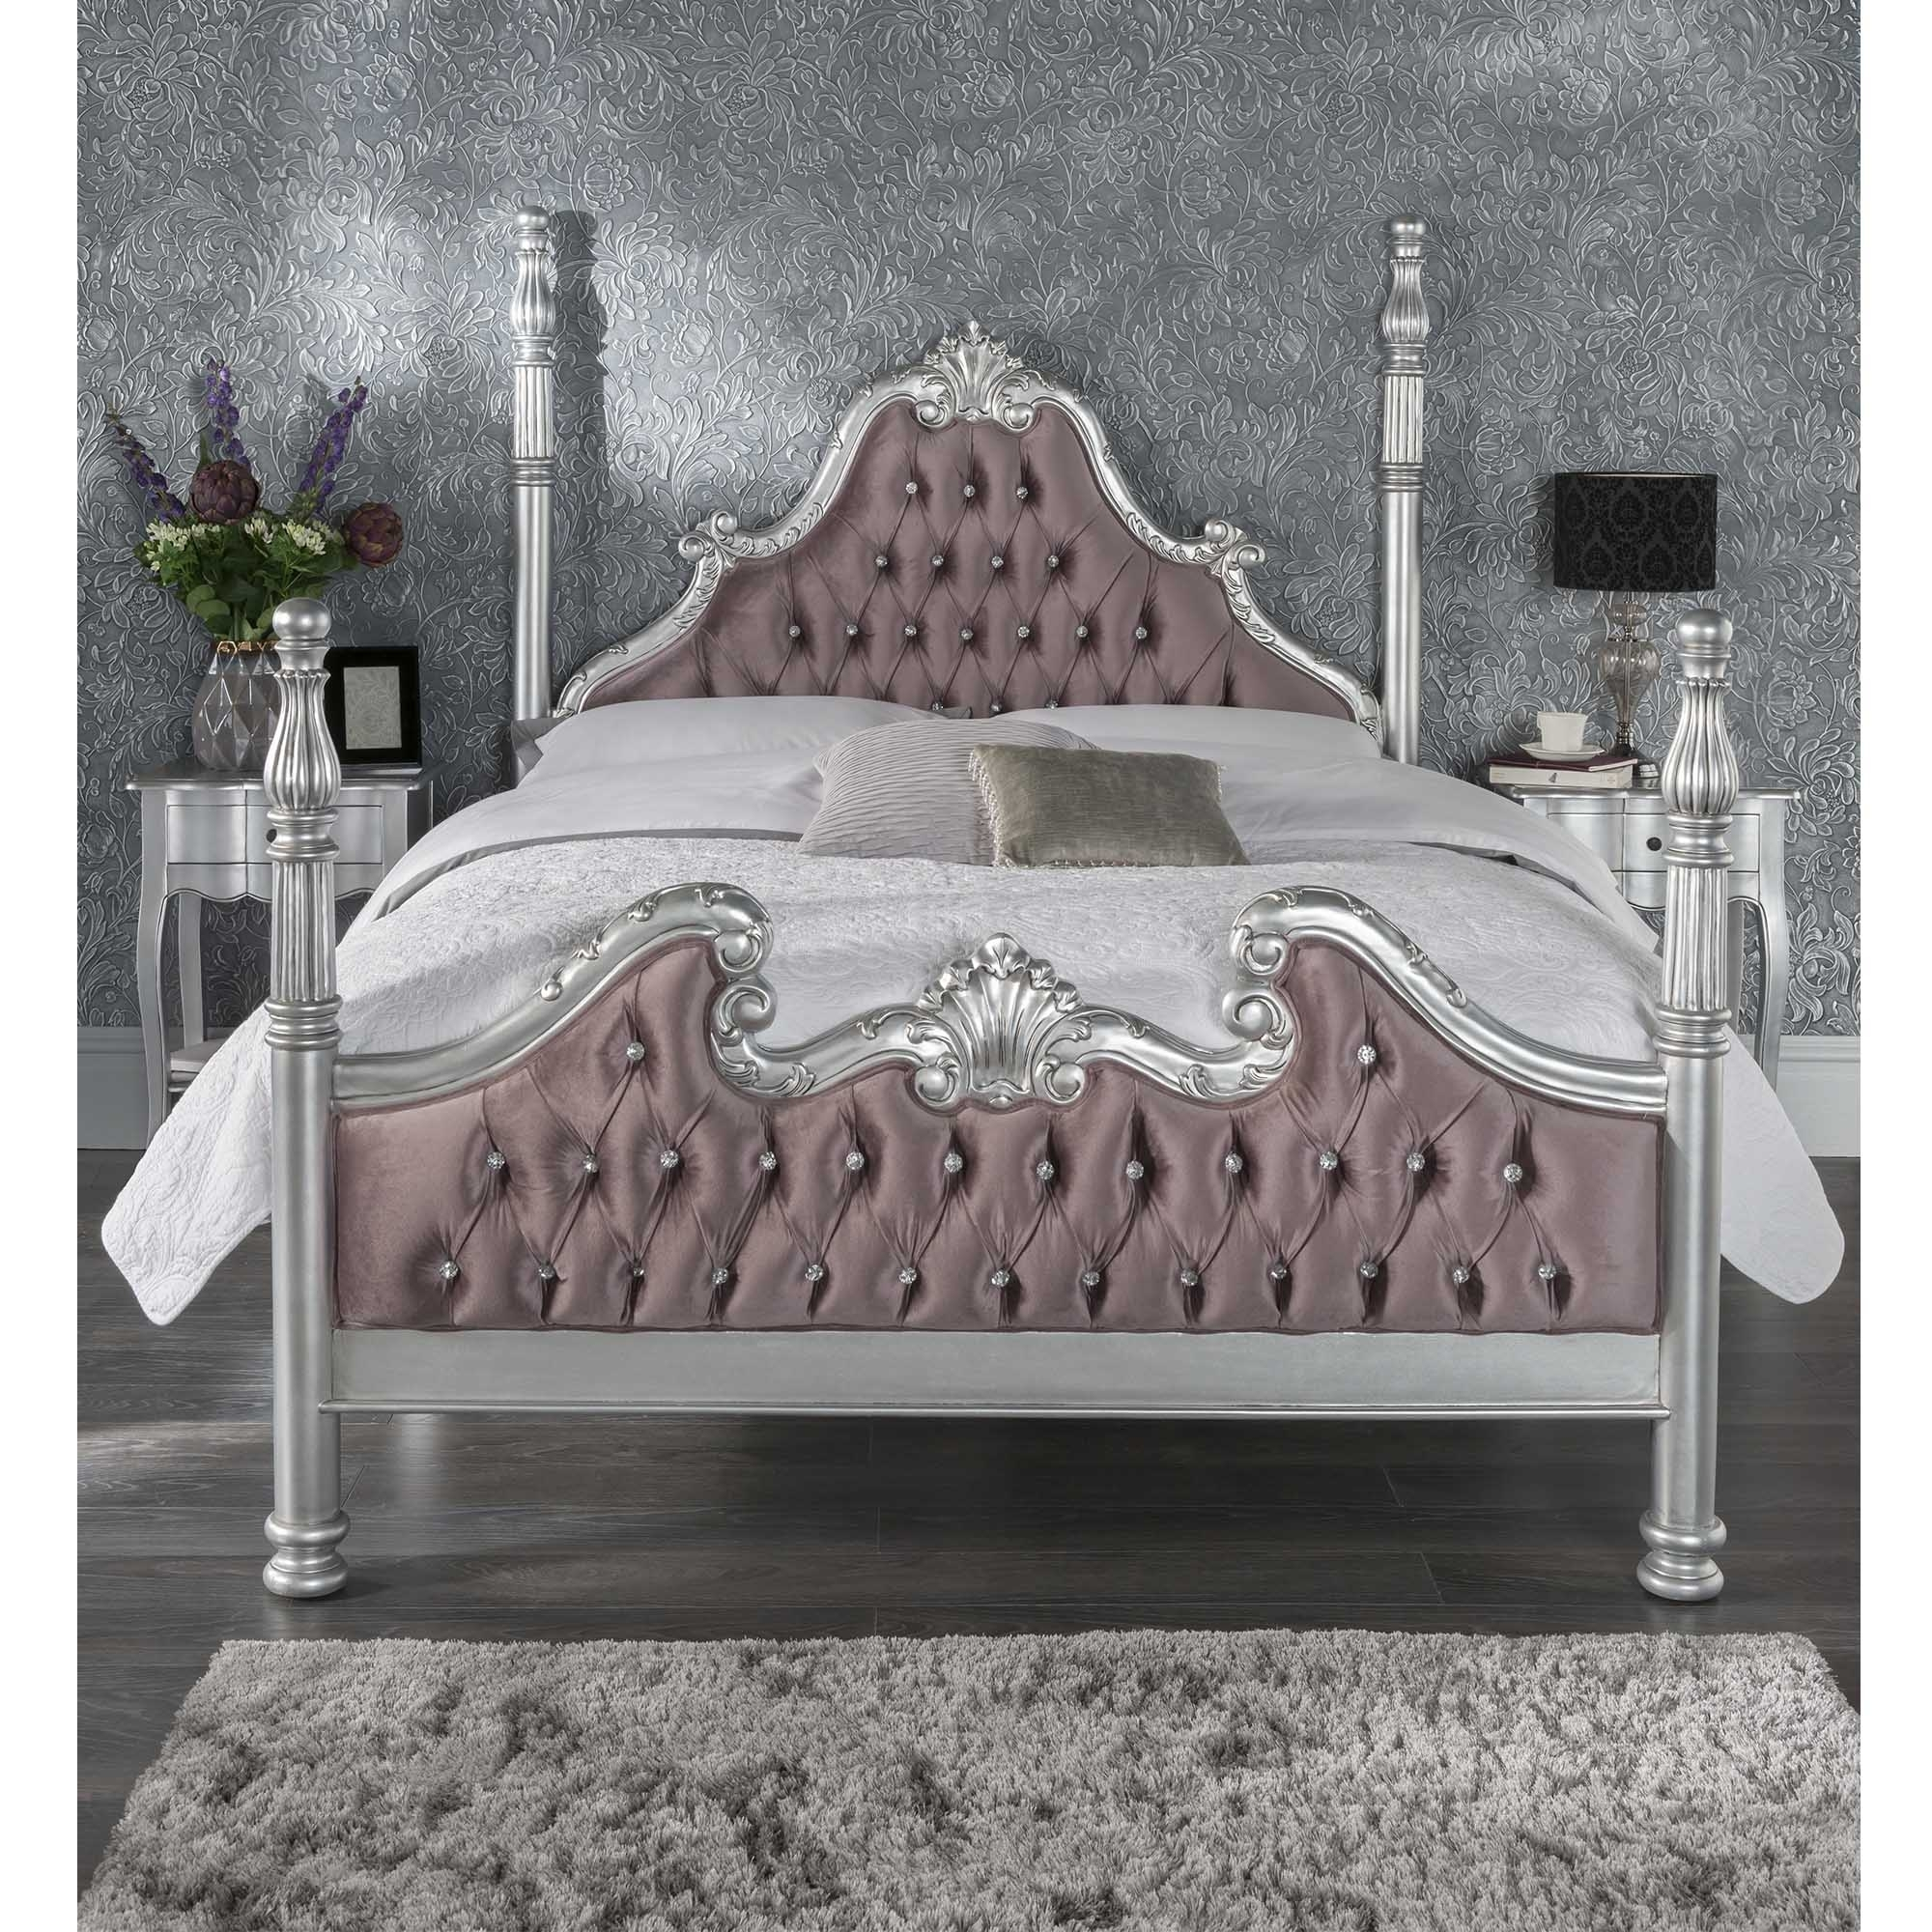 Silver Antique French Style Bed Shabby Chic Furniture